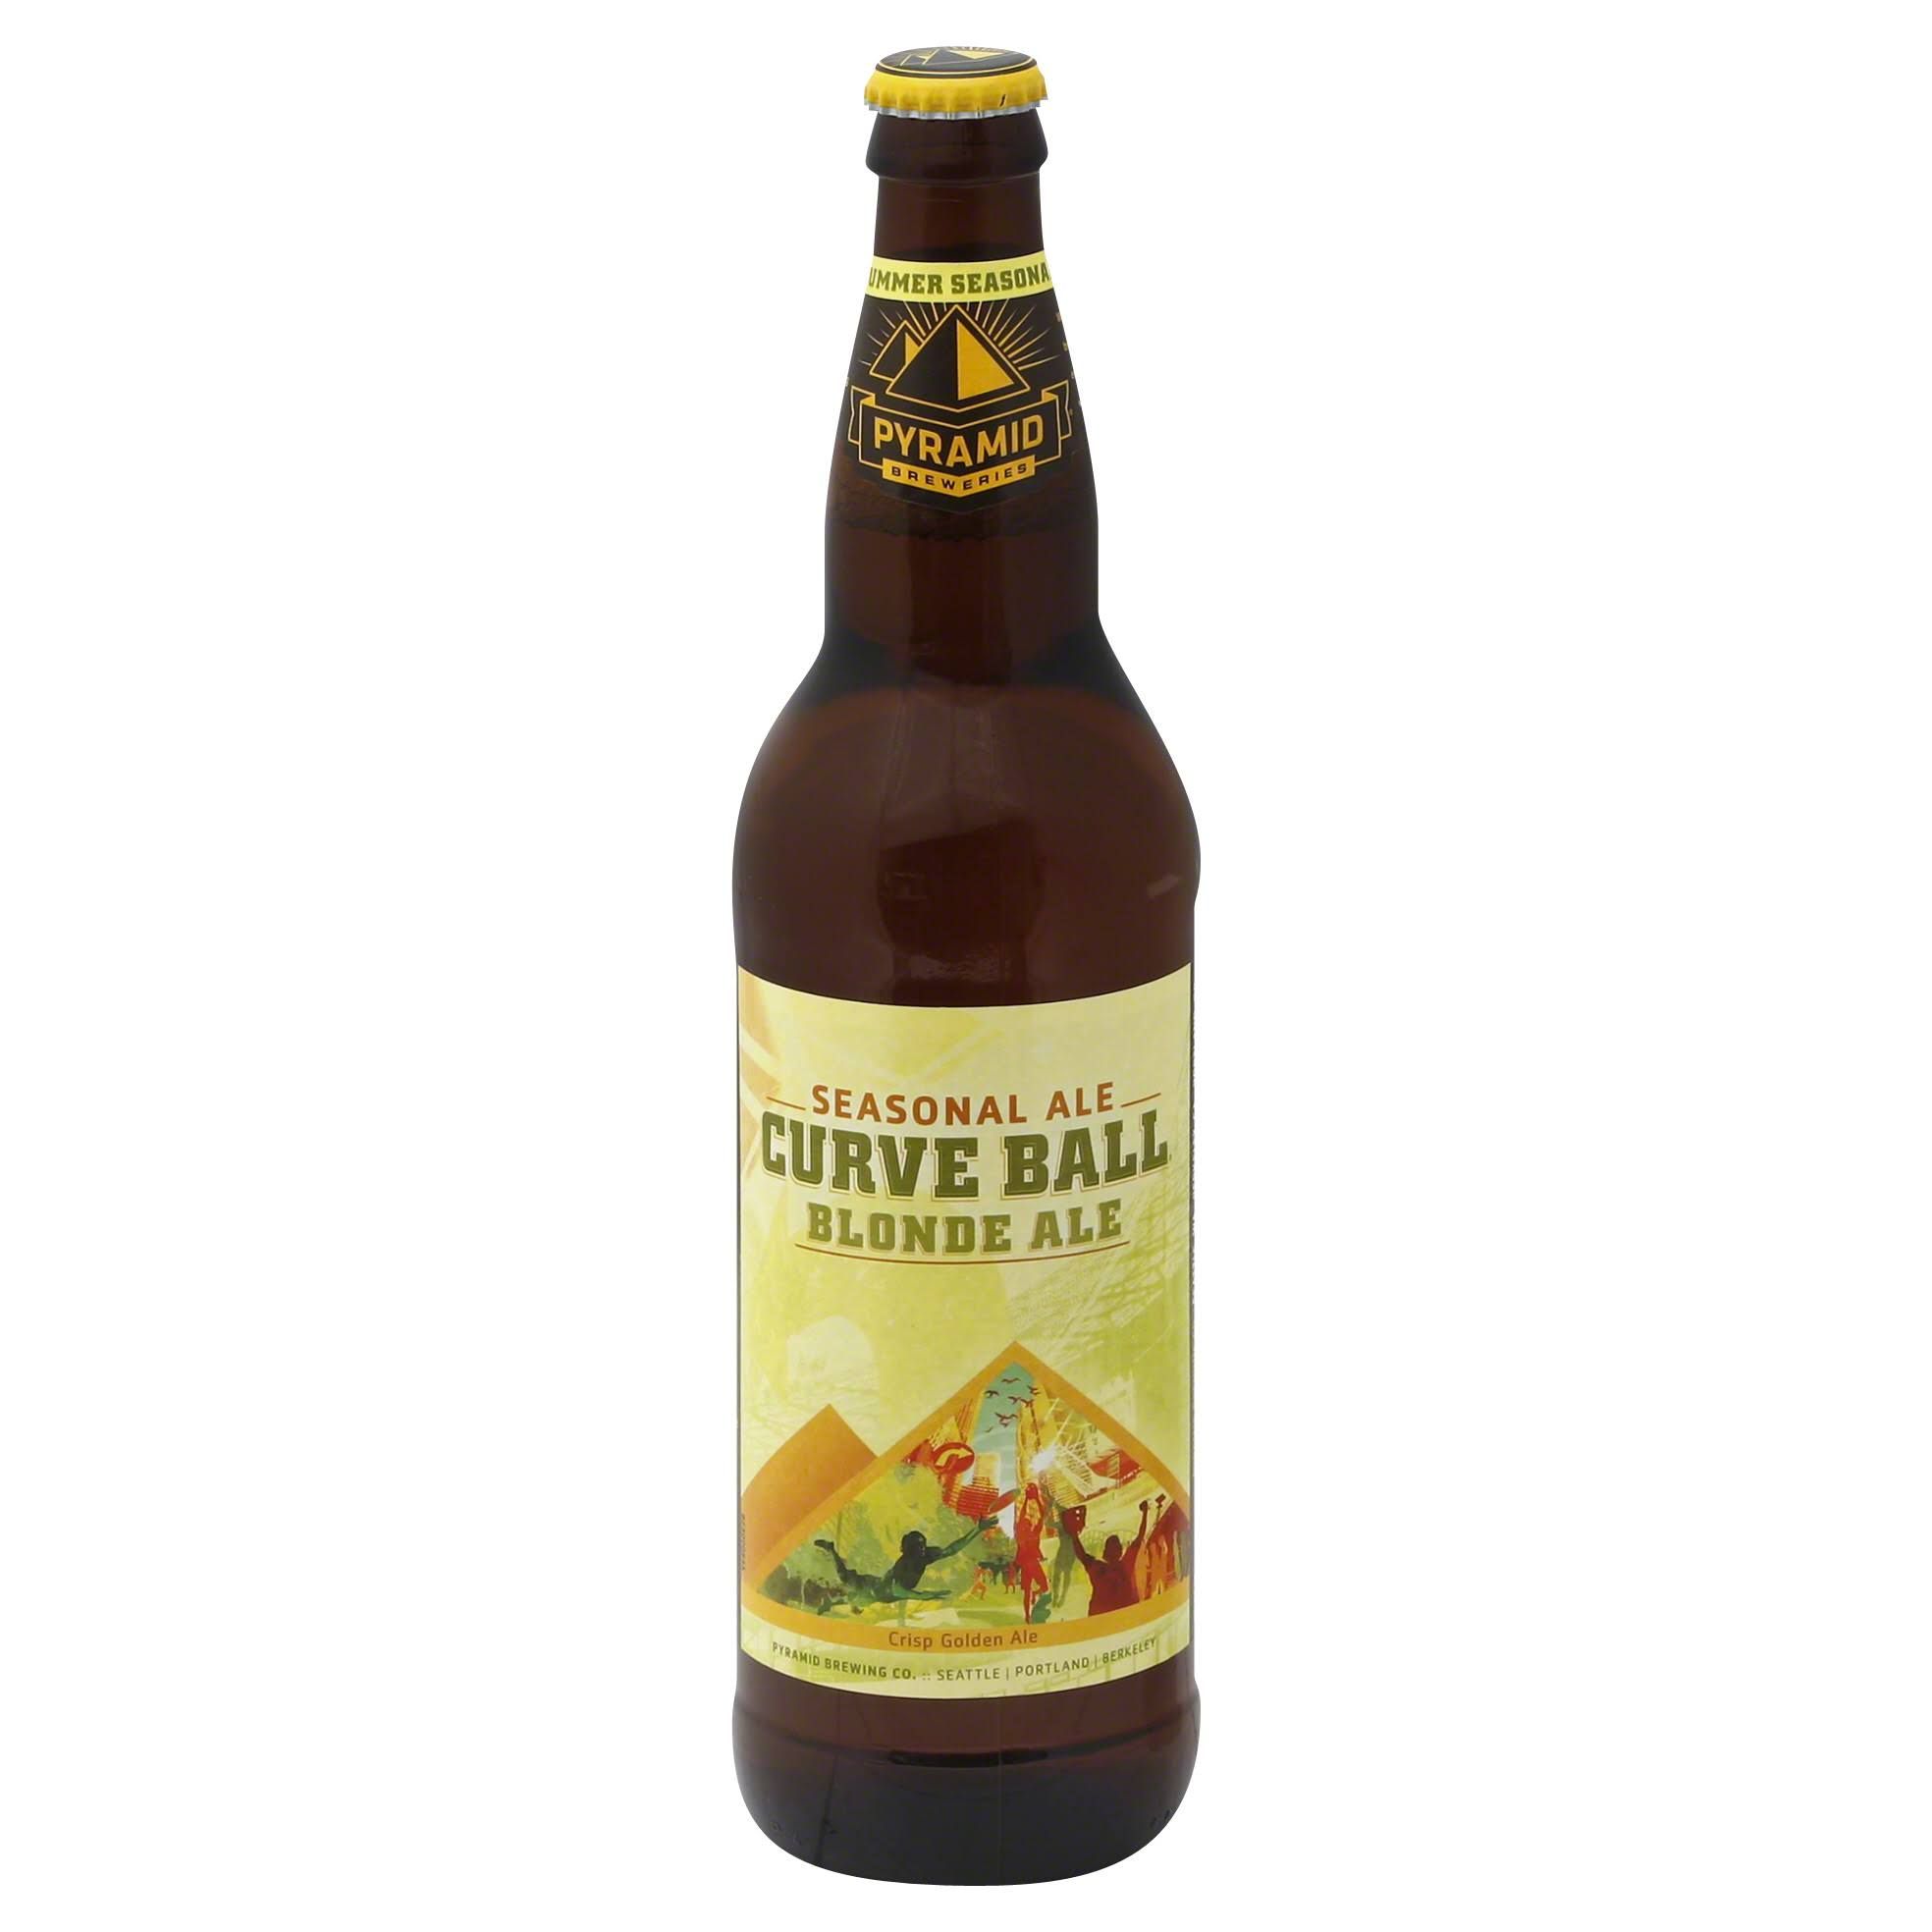 Pyramid Curve Ball Blonde Ale Cold Conditioned Ale - 22 fl oz